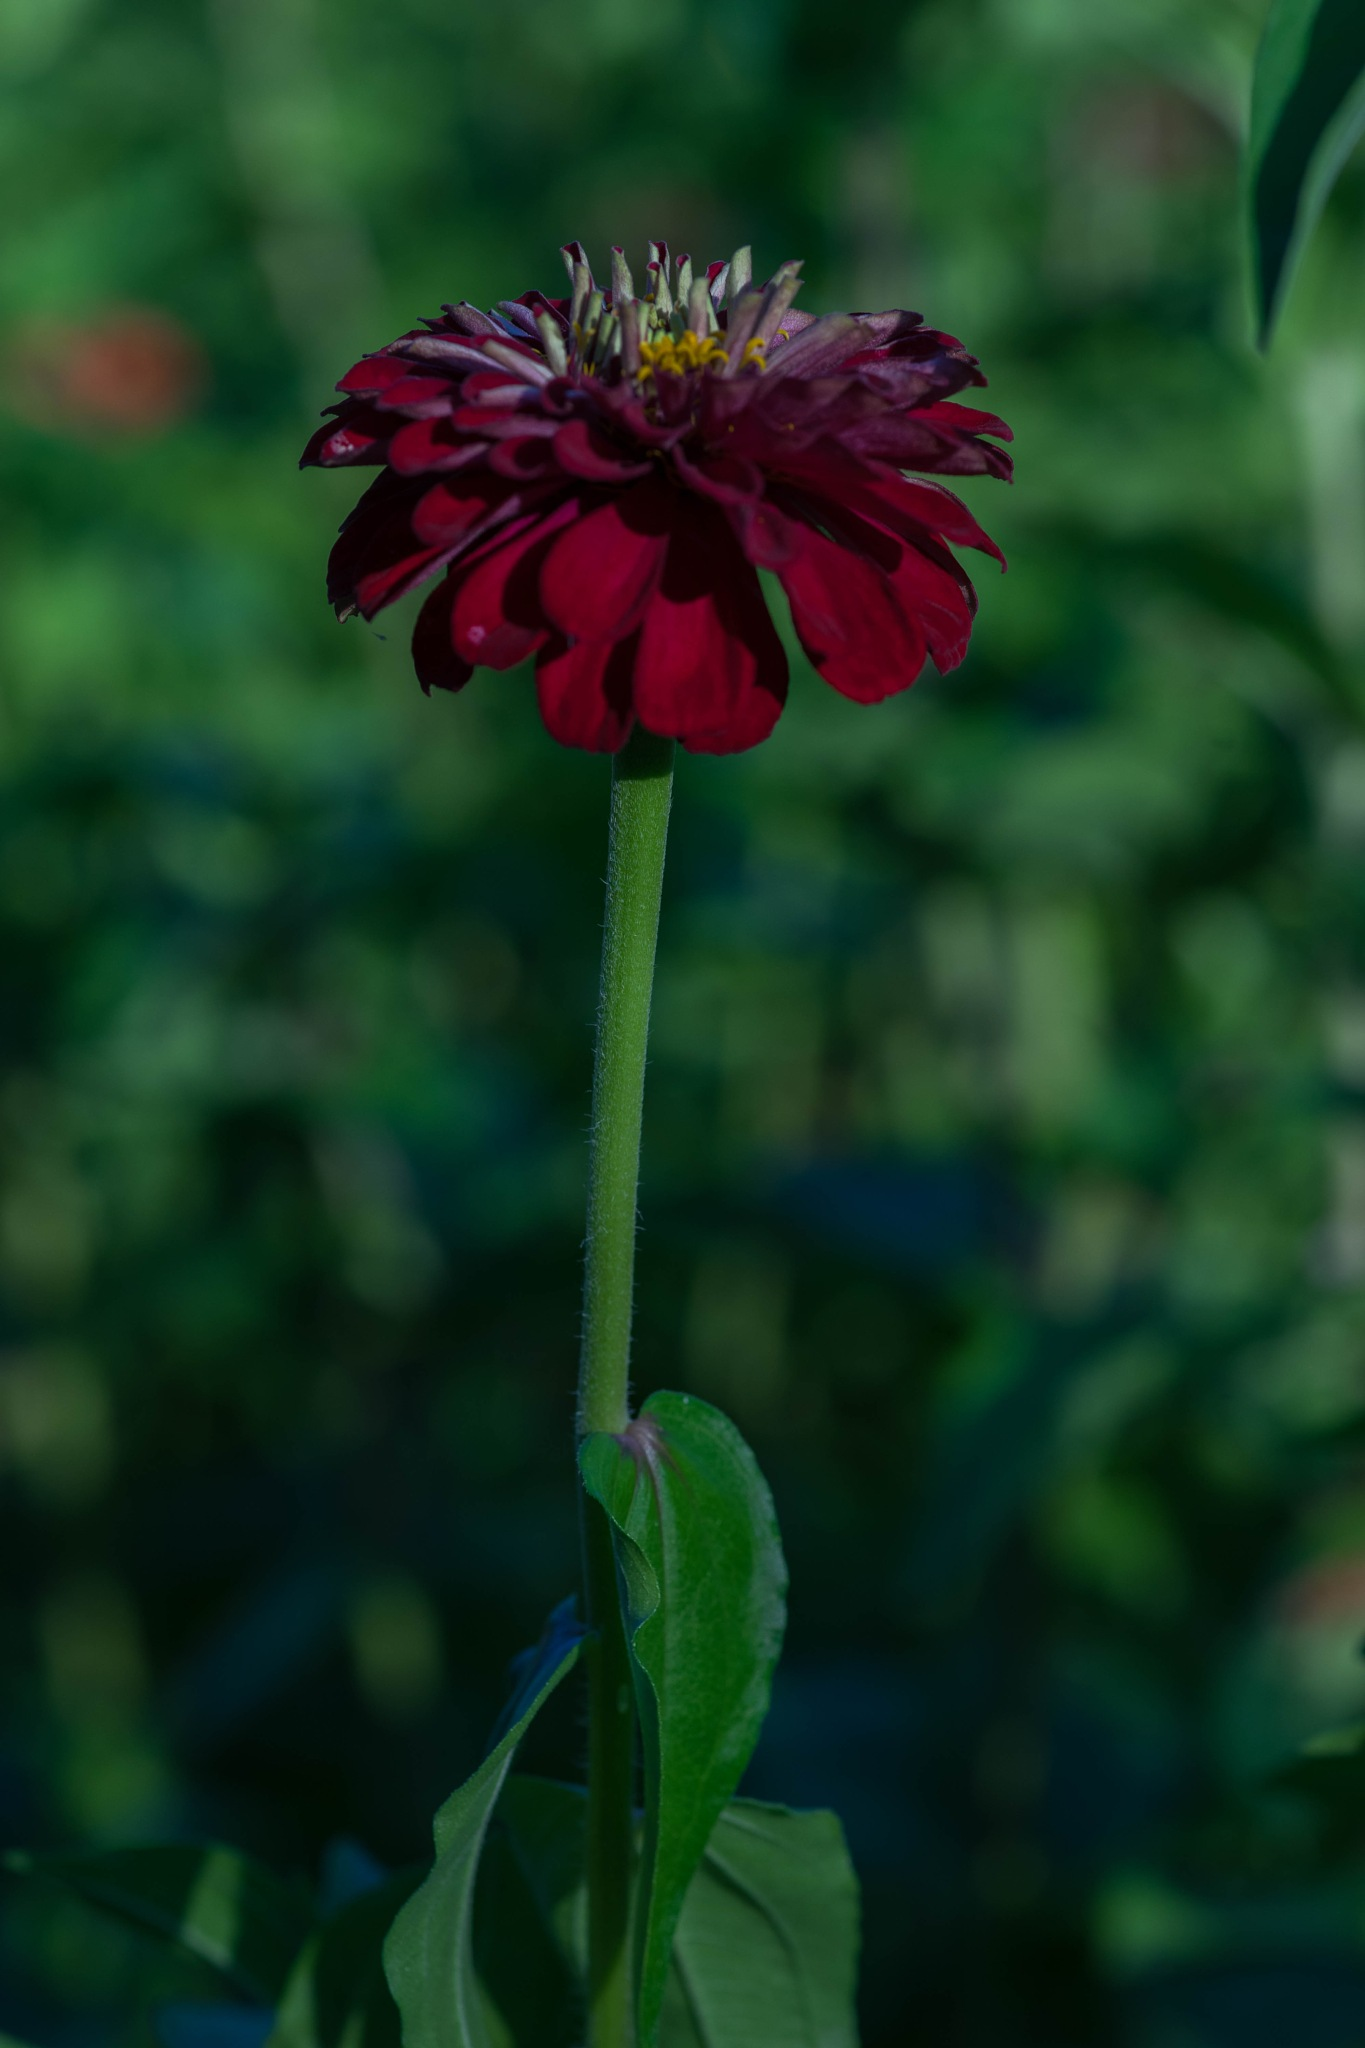 Rote Blume by Hansjuerg Buehler